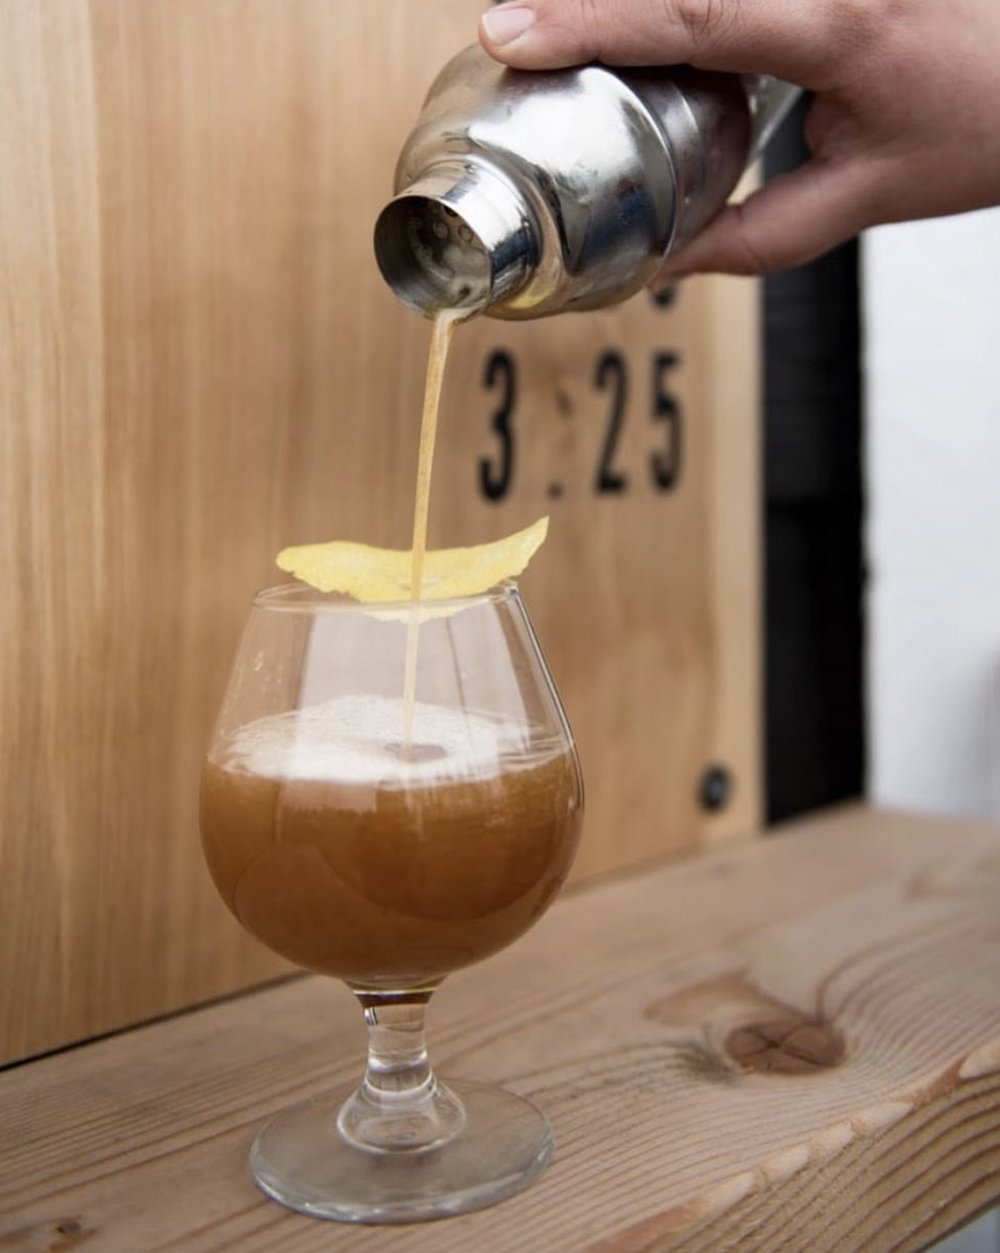 The Arnie    A twist on the classic - sweet, delicate Ethiopian cold brew shaken over ice with an organic lemonade and a Coffee Blossom Honey infused lavender simple syrup,  delightful !   Recipe:  @laddercoffee   Photo:  @captured.relativity